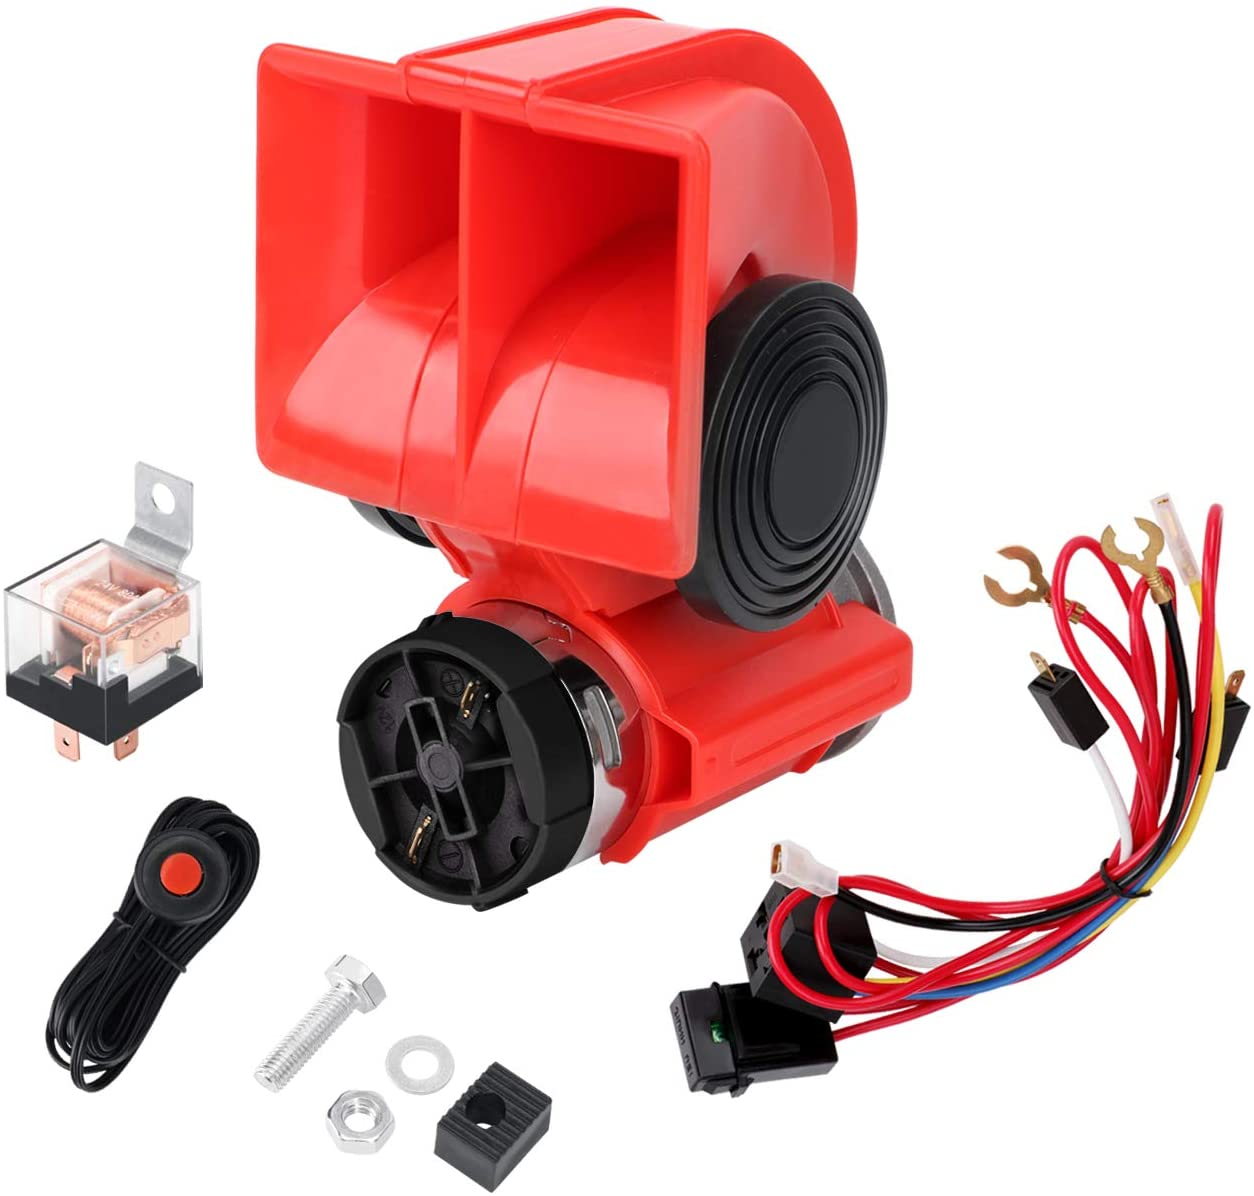 SEINECA 12V Car Air Horn Compact with Compressor Automotive Relay Mini Nautilus Super Loud Sanil Horn Kit for Truck Car Motorcycle(12V Red with Switch)